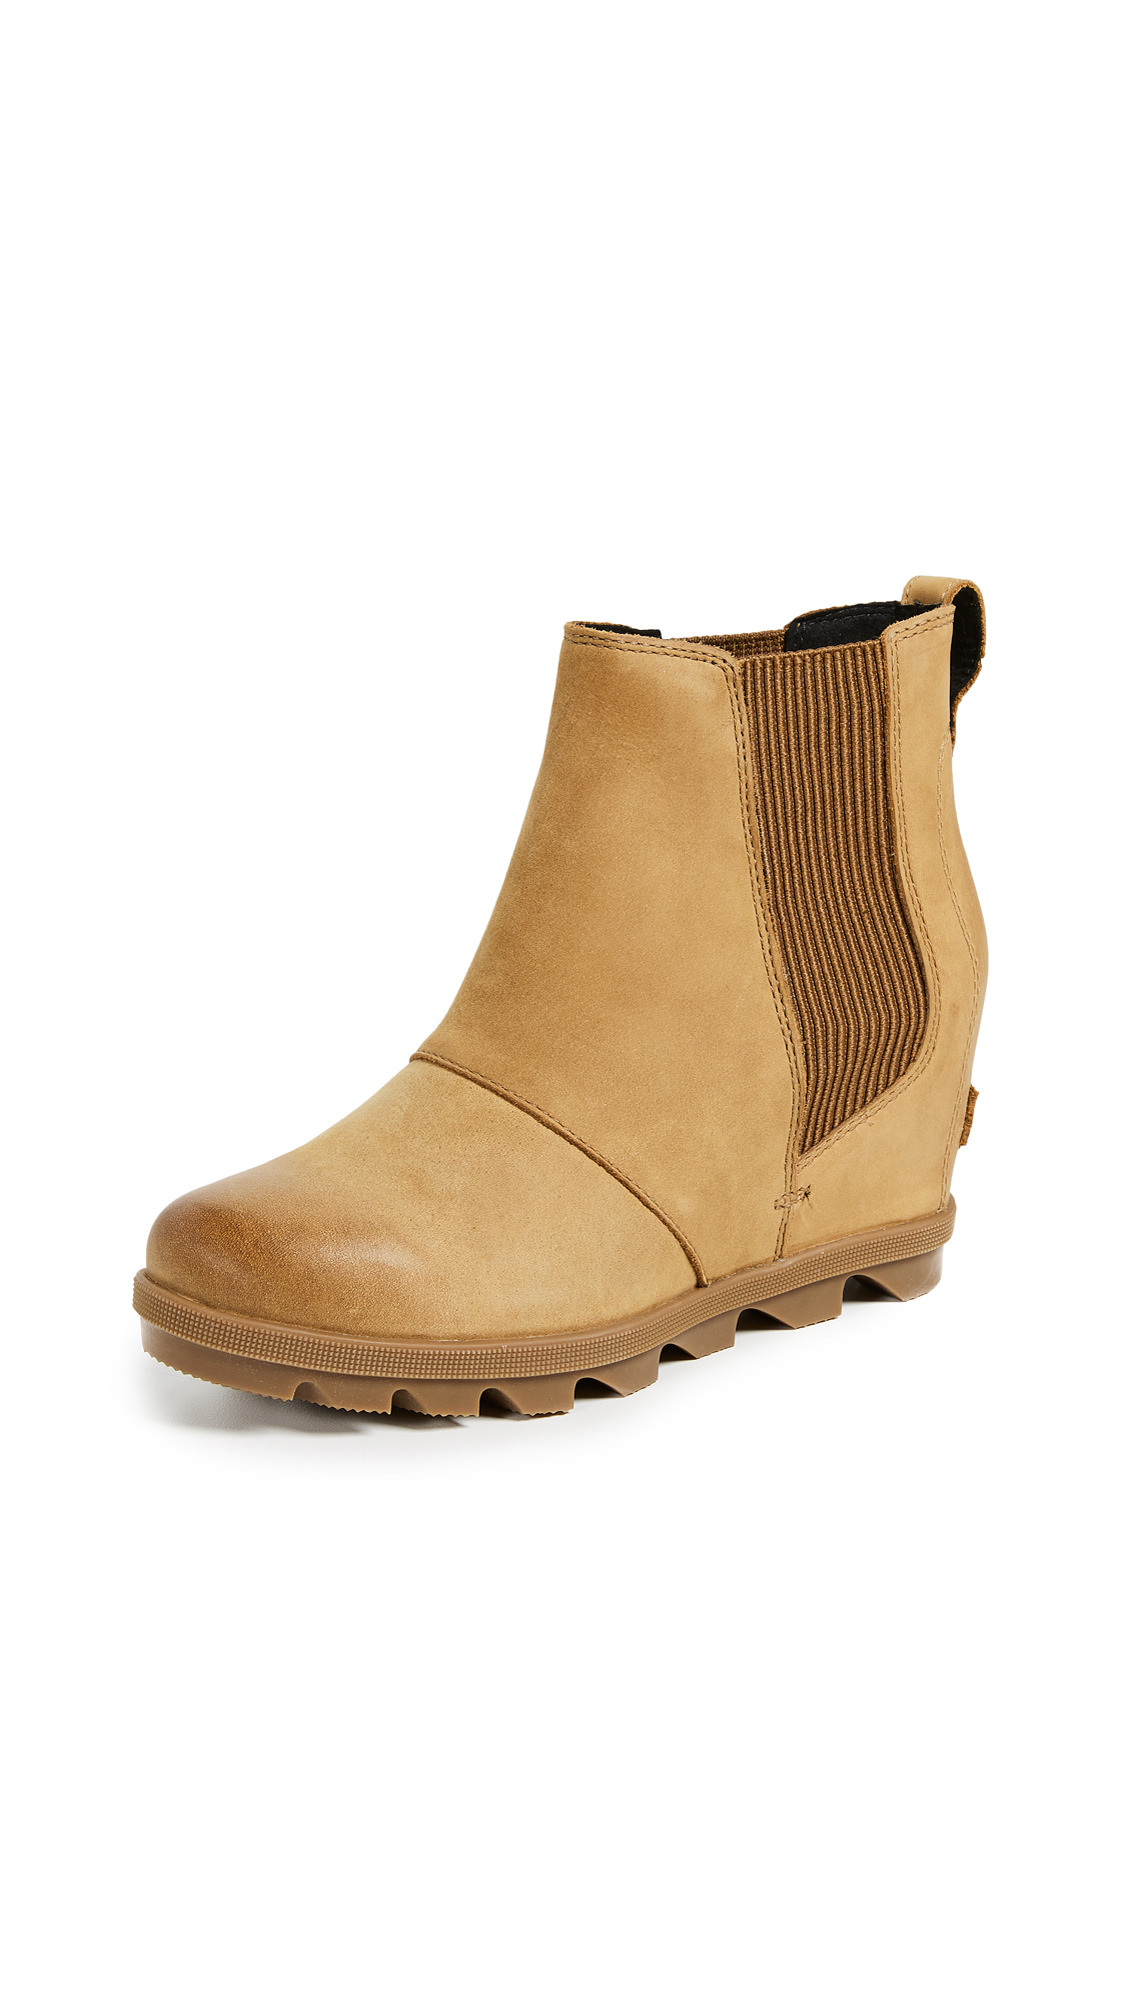 Sorel Joan of Arctic Wedge II Chelsea Boots - Camel Brown